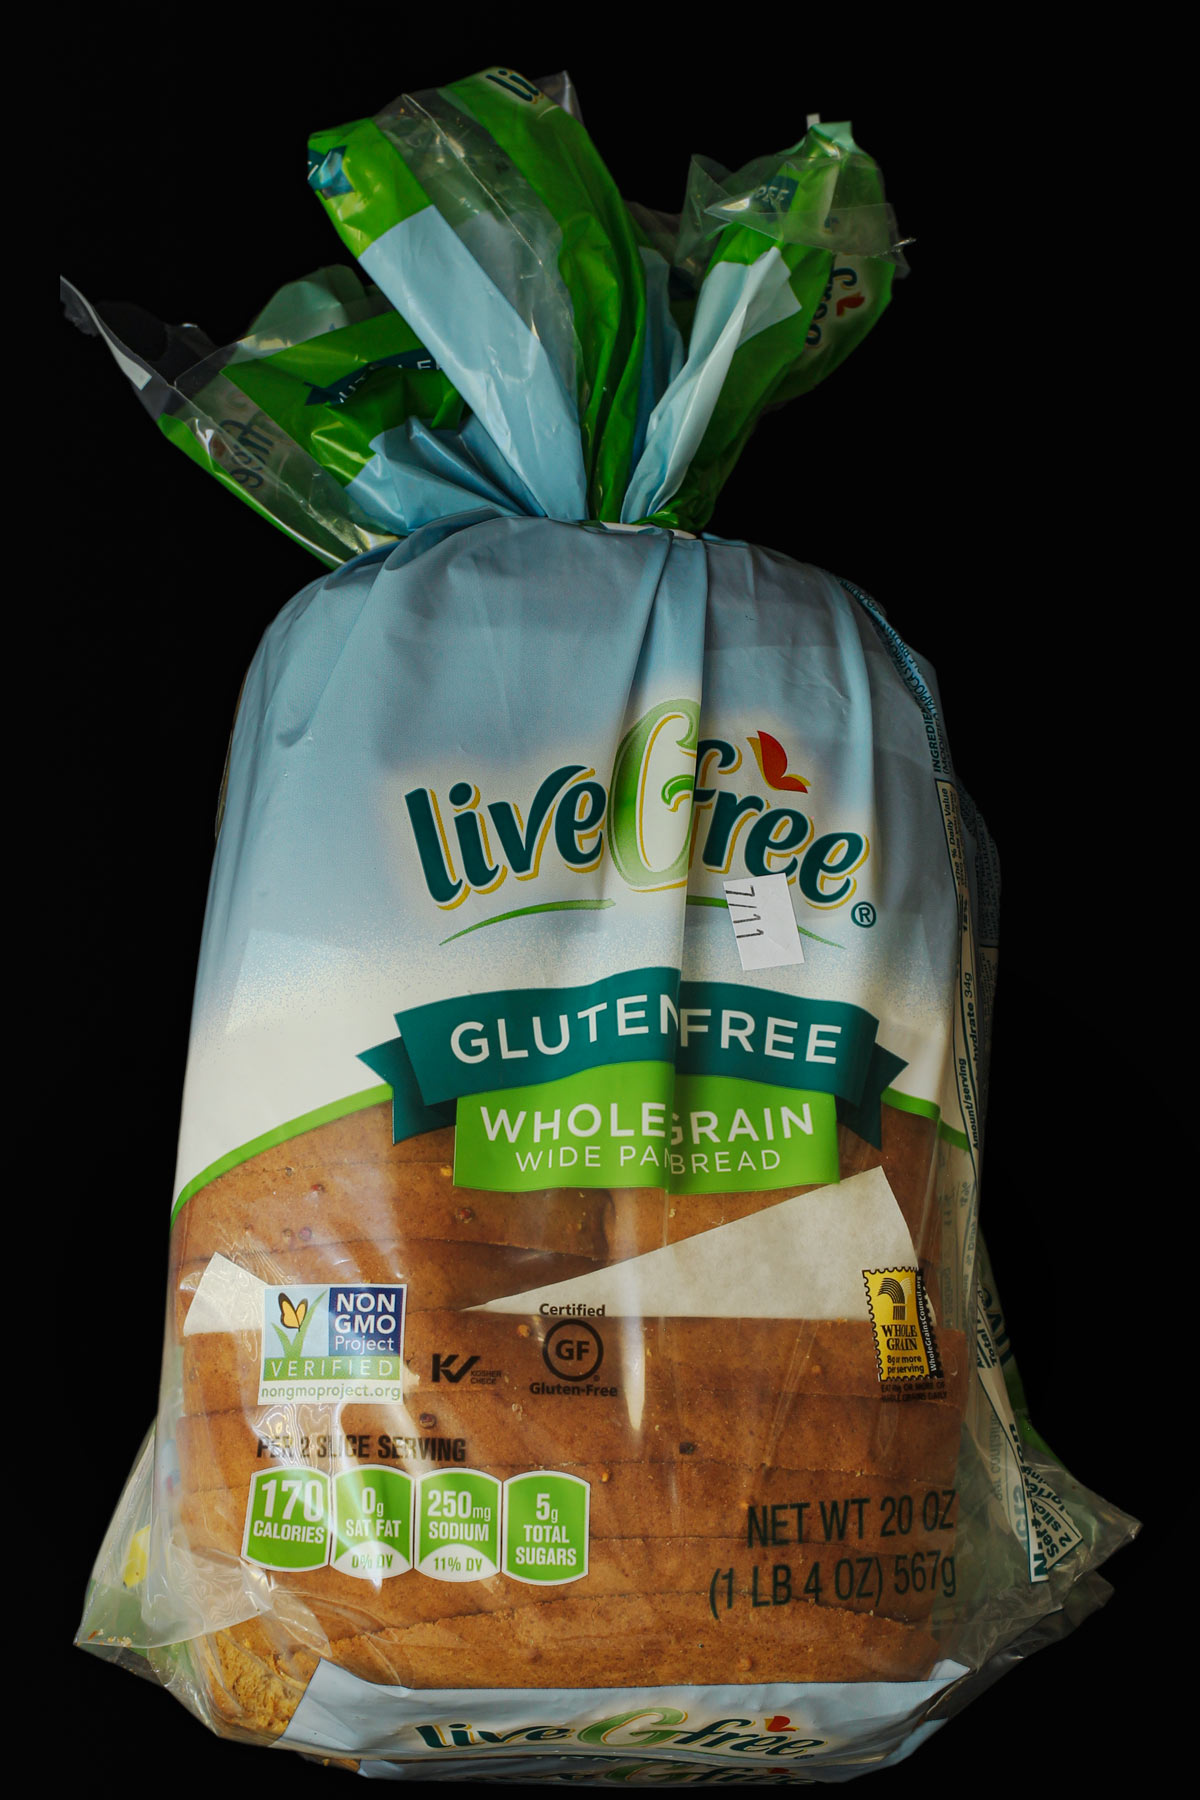 bread repackaged in original bag but with slices separated by patty papers.